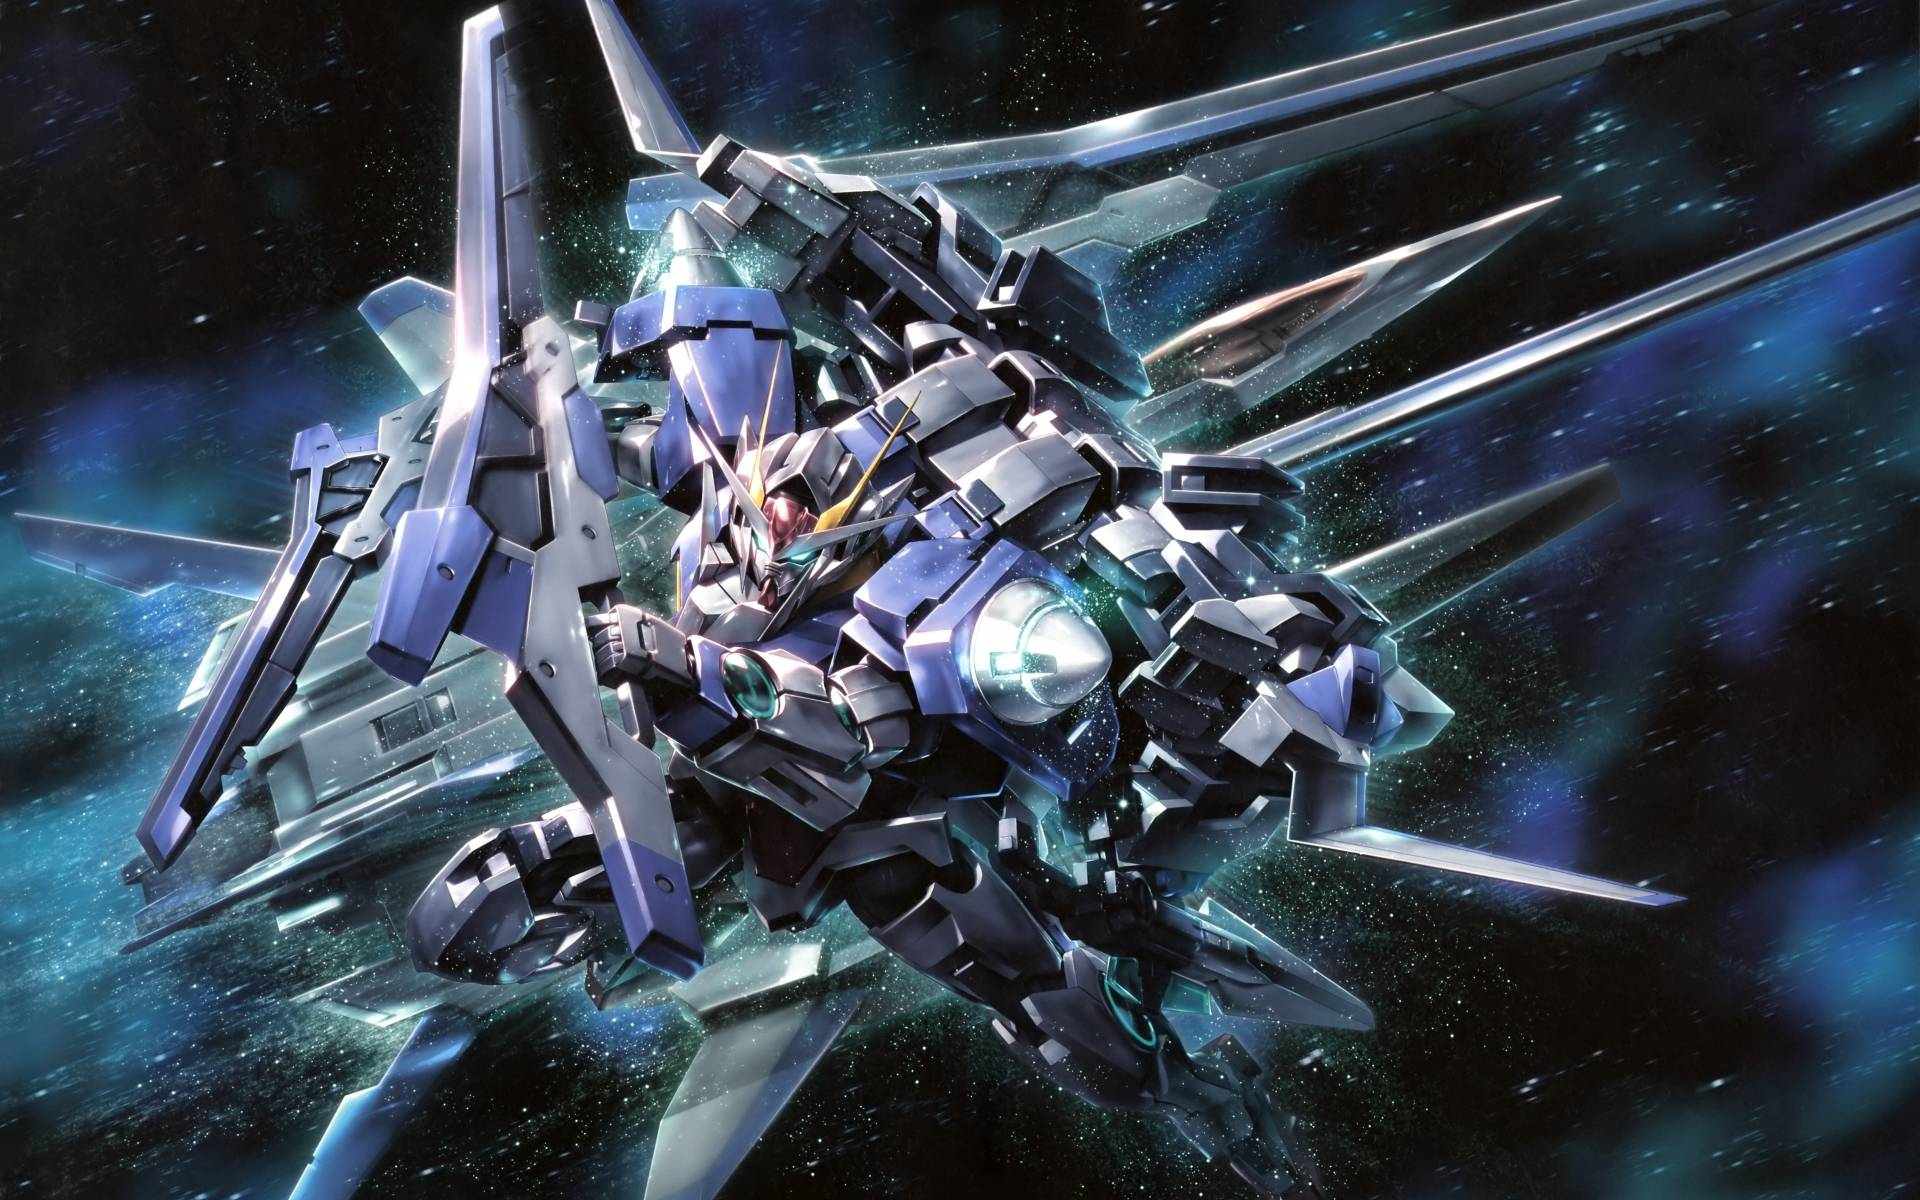 Mobile Suit Gundam 00 Wallpapers - Wallpaper Cave